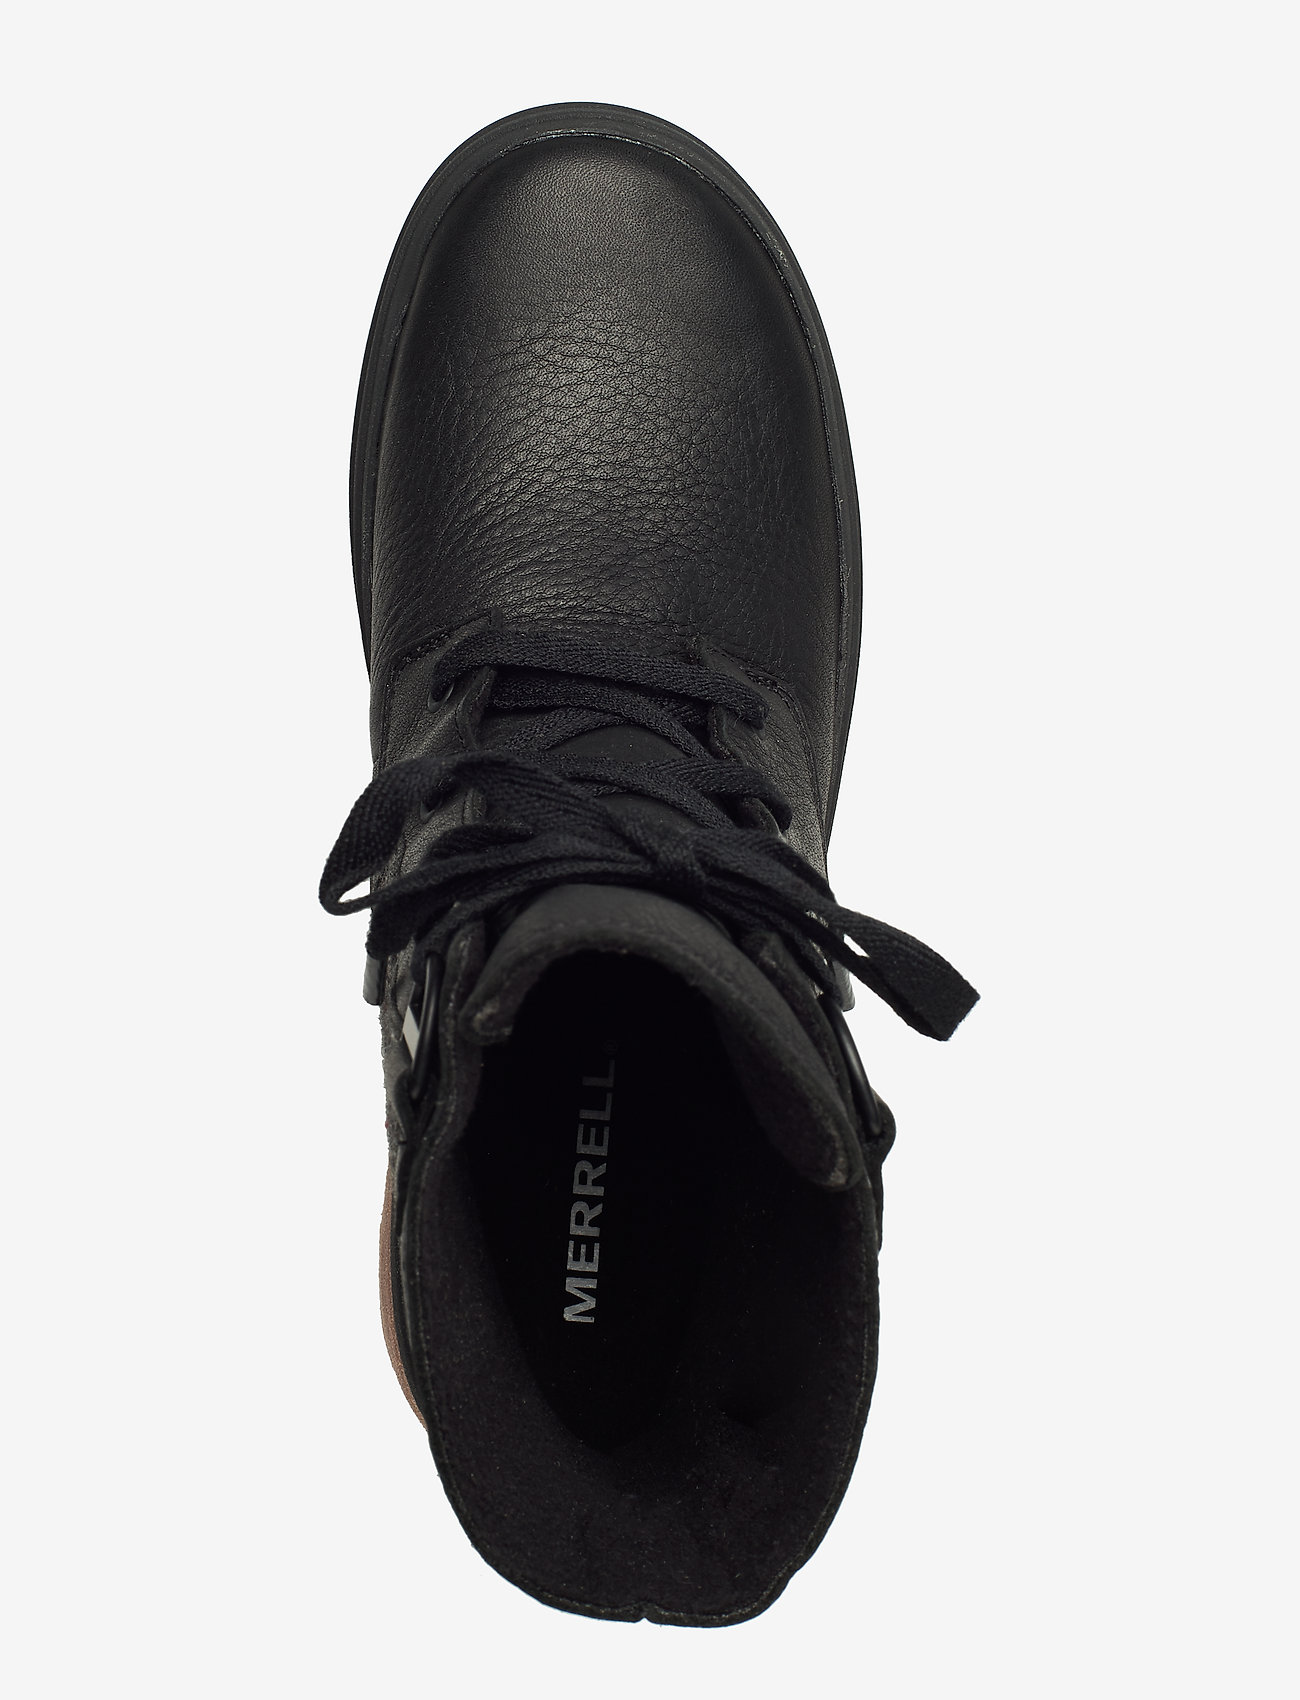 Haven Mid Lace Wp (Black) (840 kr) - Merrell